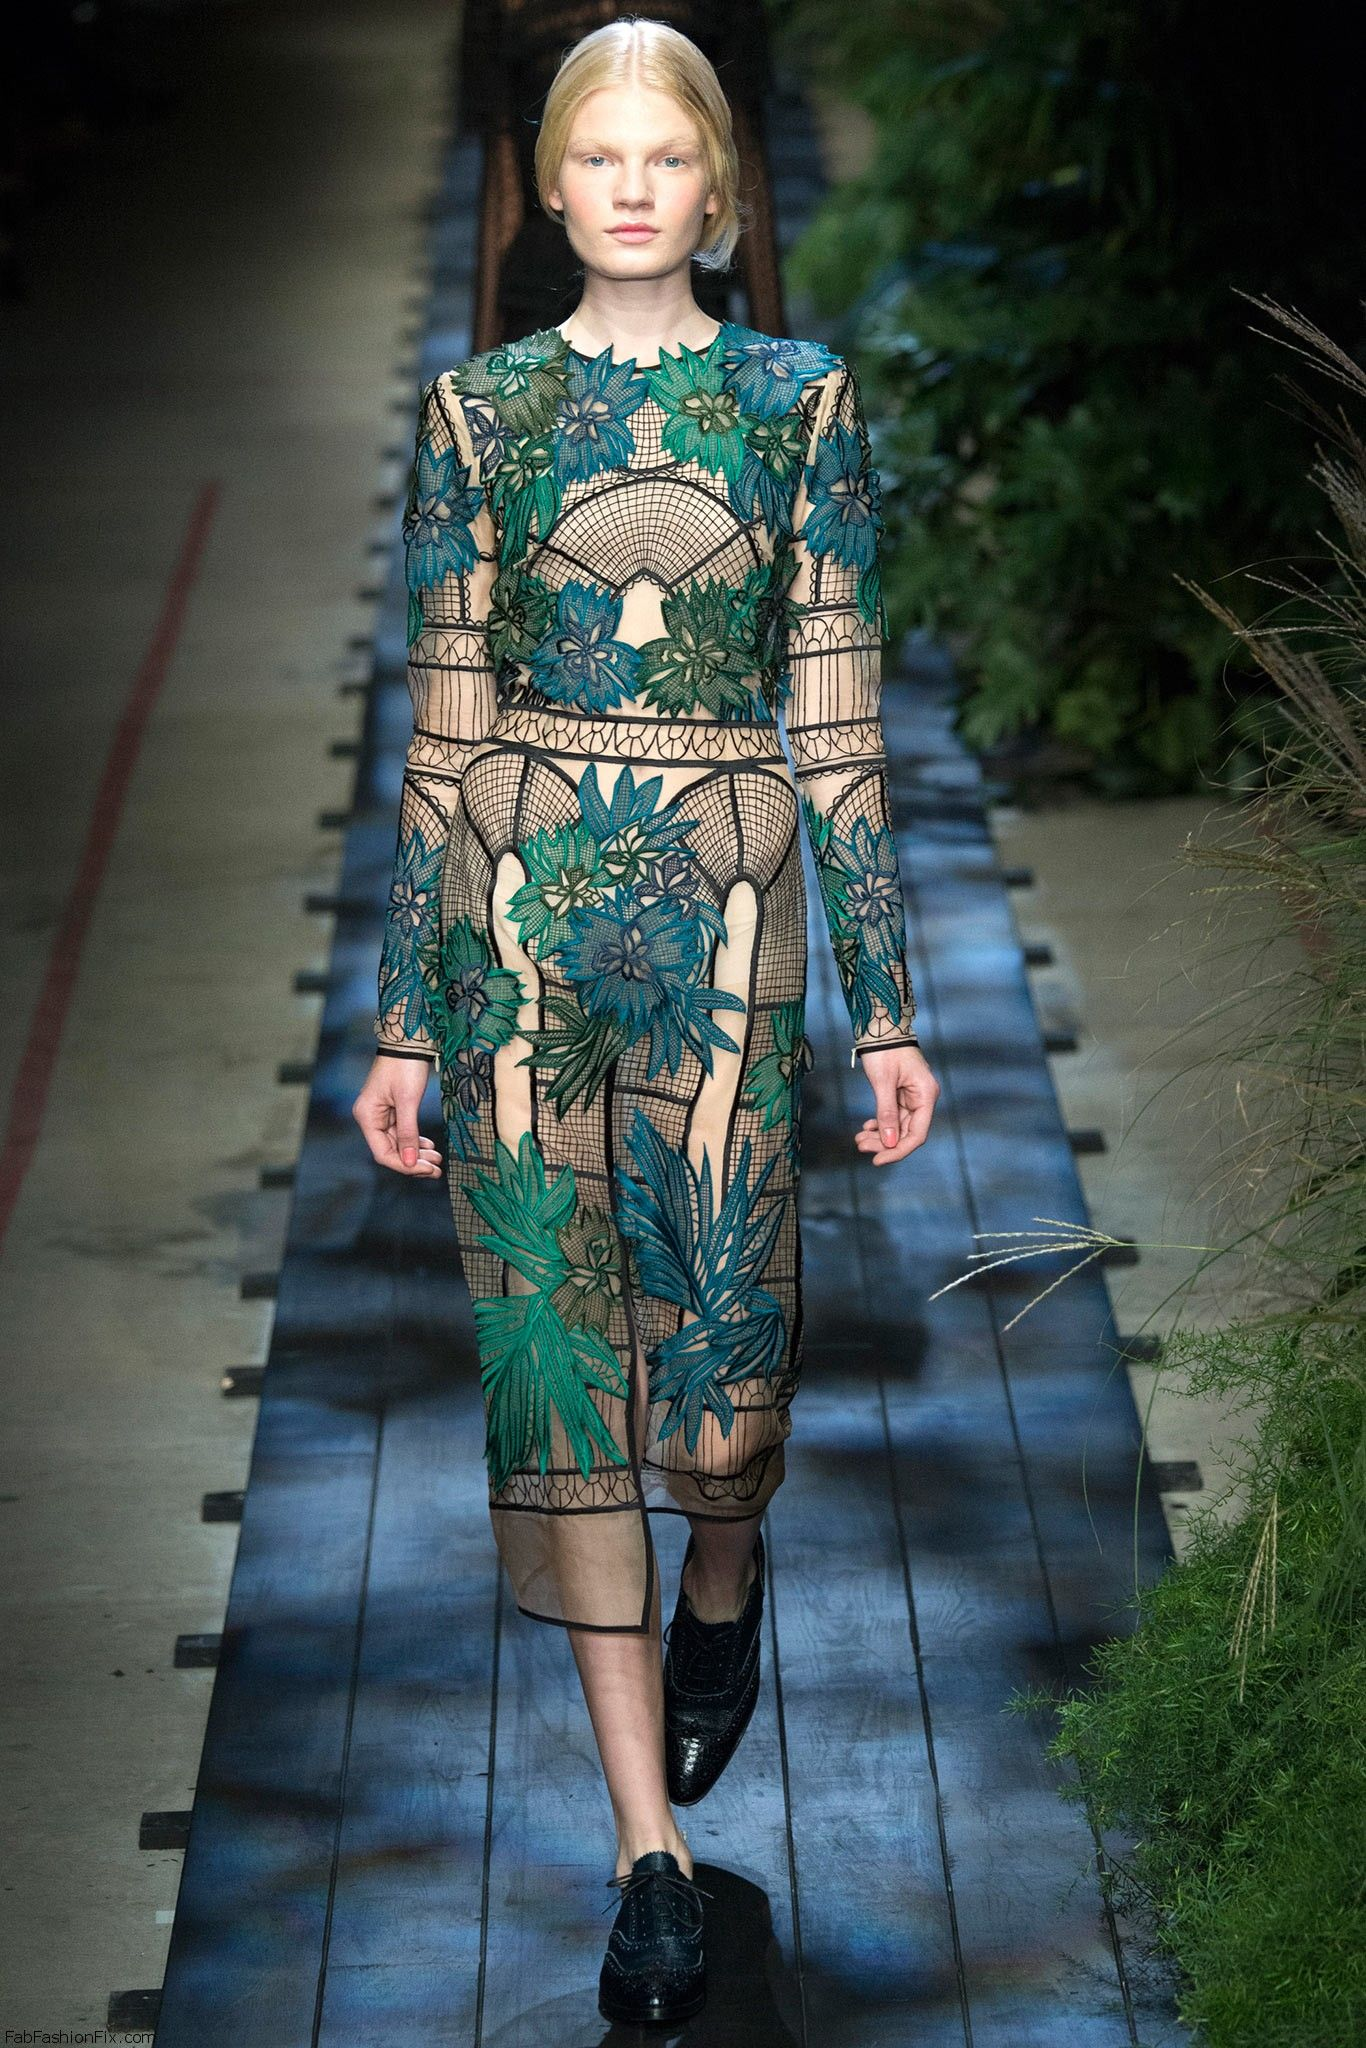 Erdem springsummer 2015 collection  London fashion week